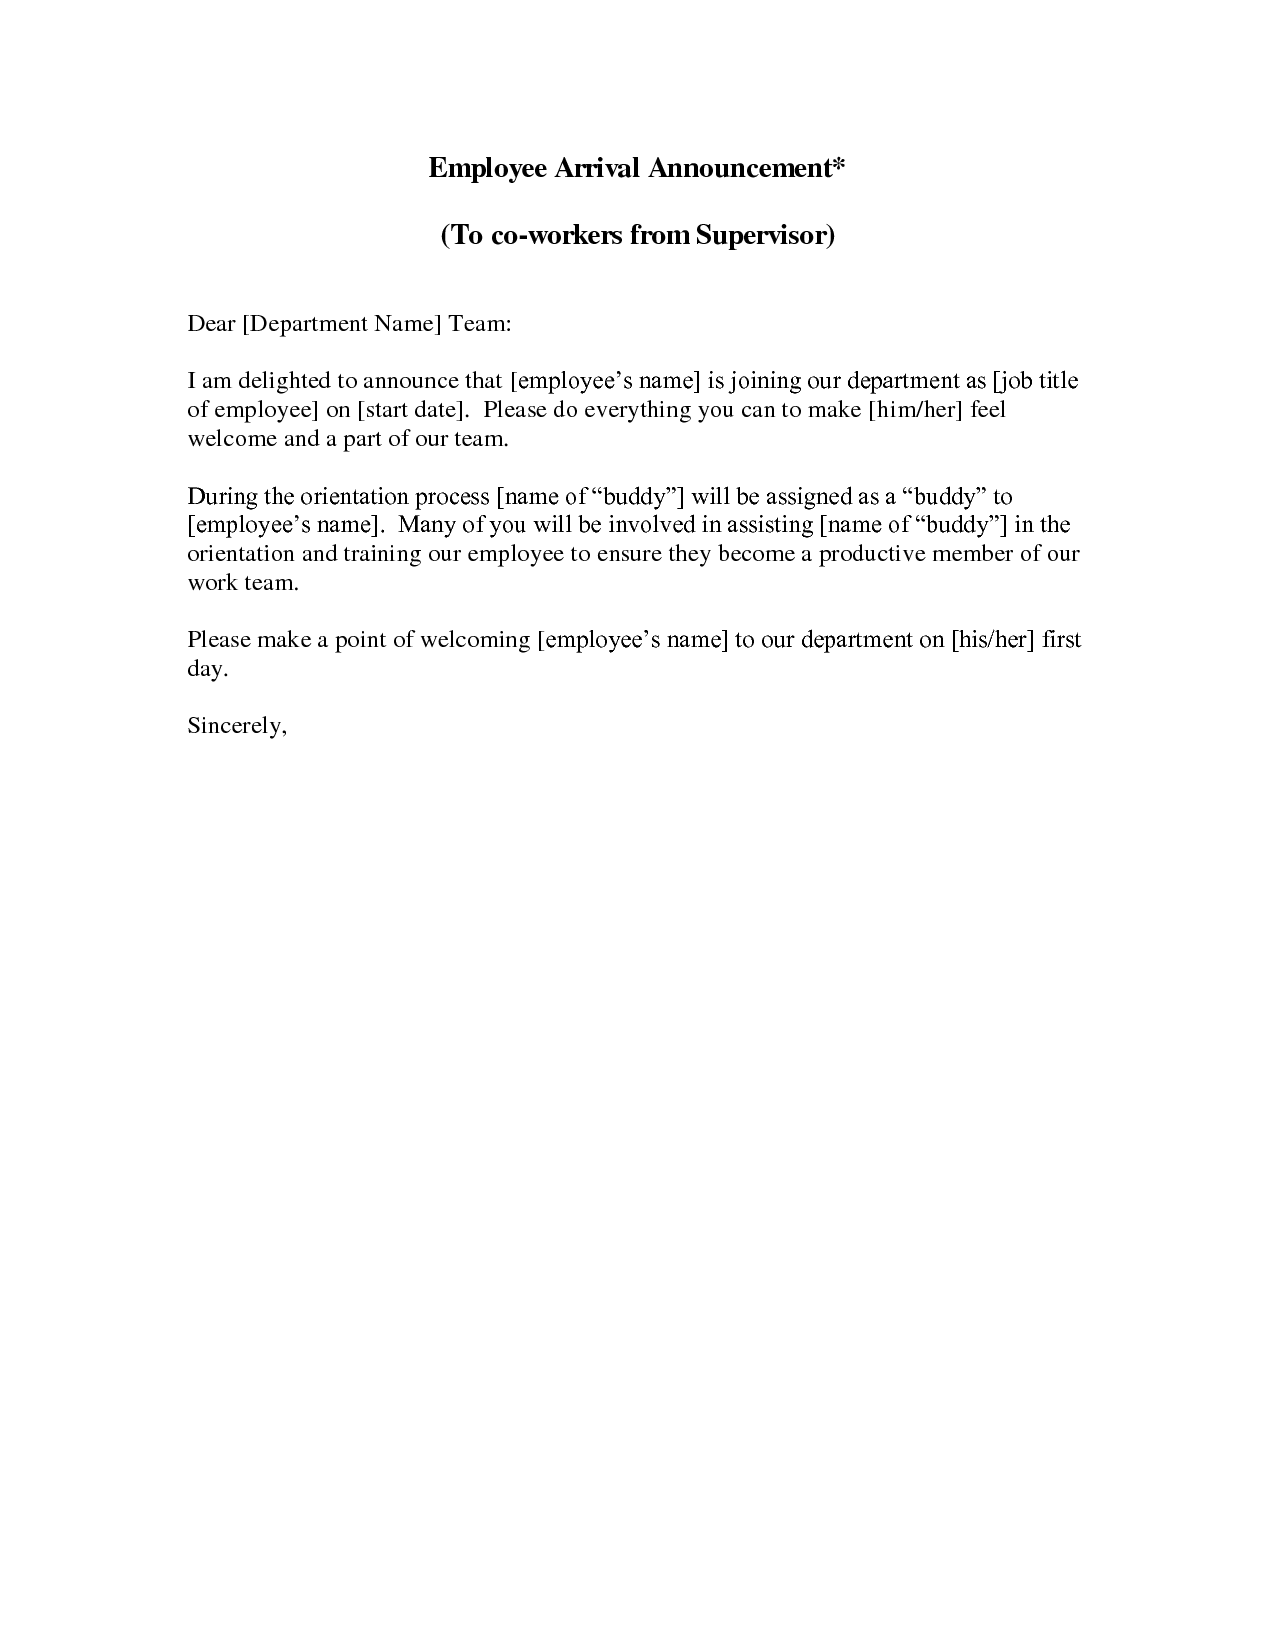 Organizational Announcement Samples Gorgeous New Employee Announcement Letter  This Sample New Employee .